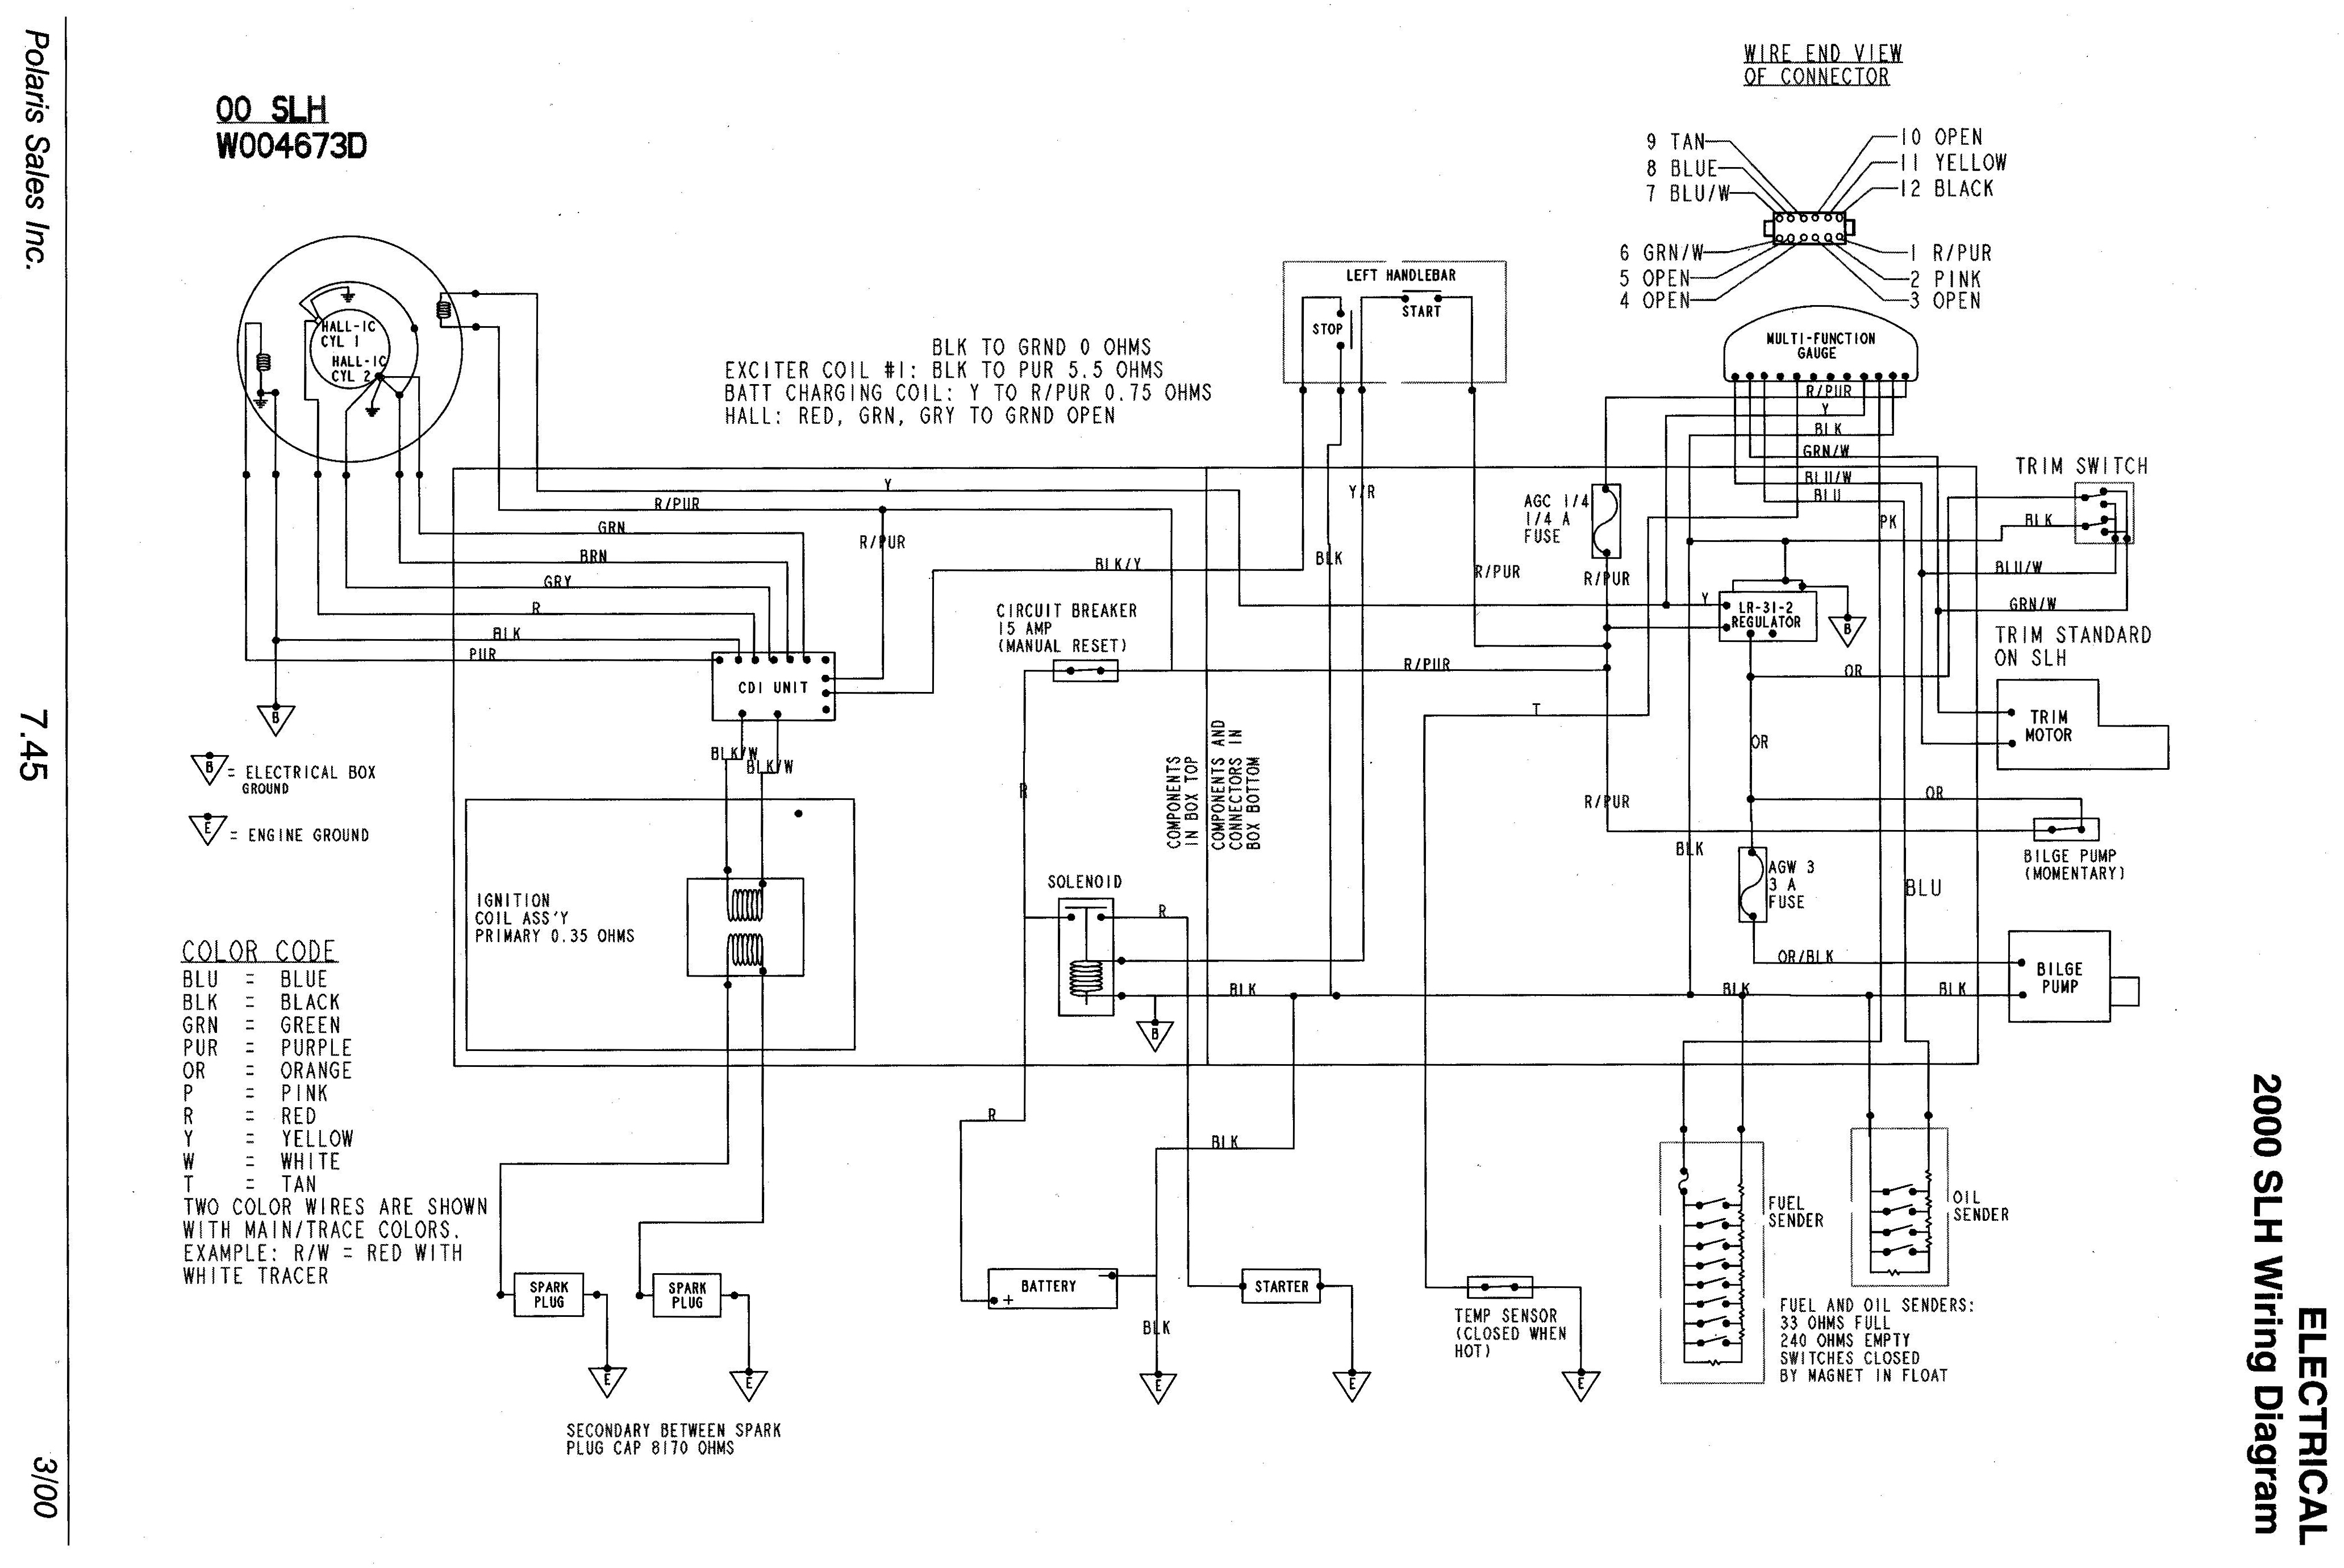 1999 dodge neon ignition wiring diagram php  1999  wiring